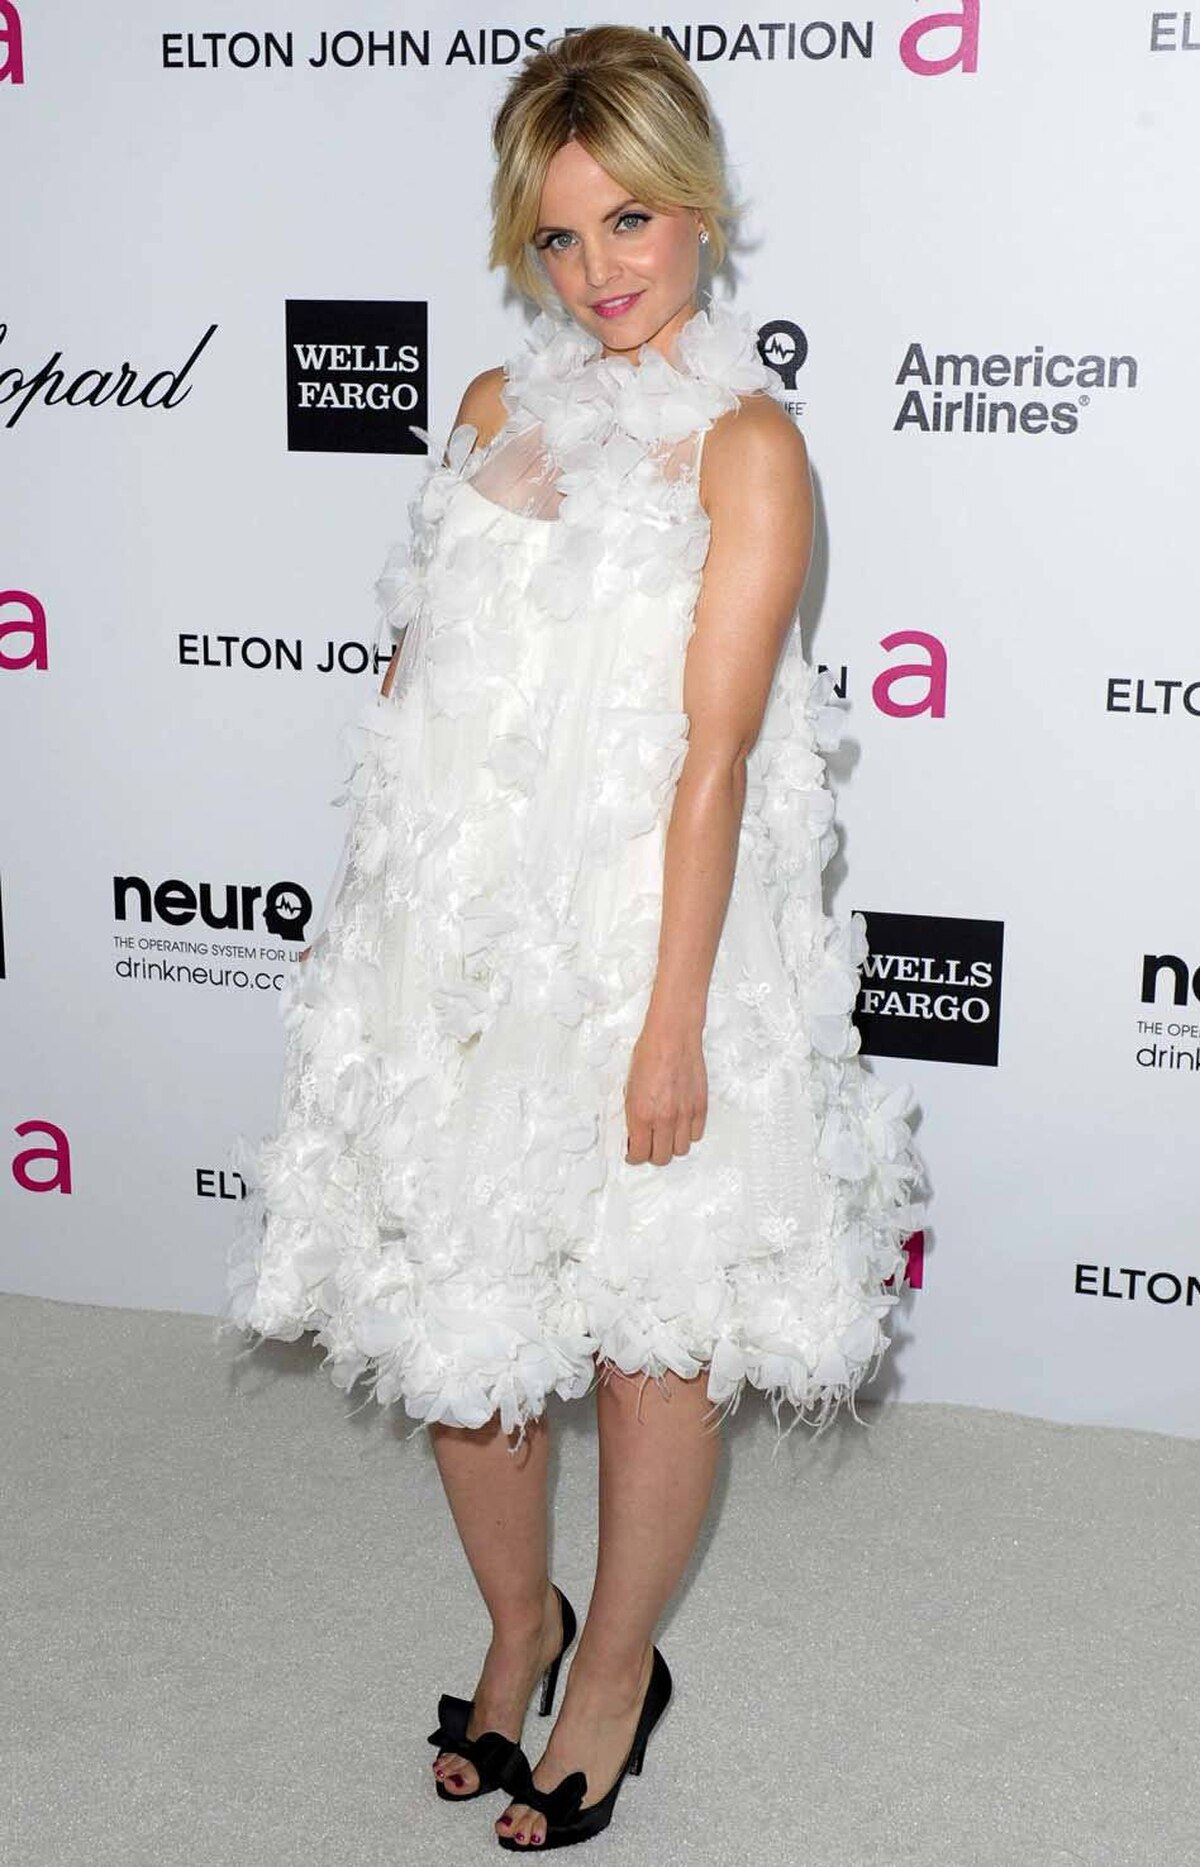 Mena Suvari wore Donald Duck to the annual Elton John AIDS Foundation Academy Awards Viewing Party in West Hollywood on Sunday. Seriously, unless you are Bjork there is no reason to wear a feather dress to a public event. At least, we ourselves can't think of a reason.